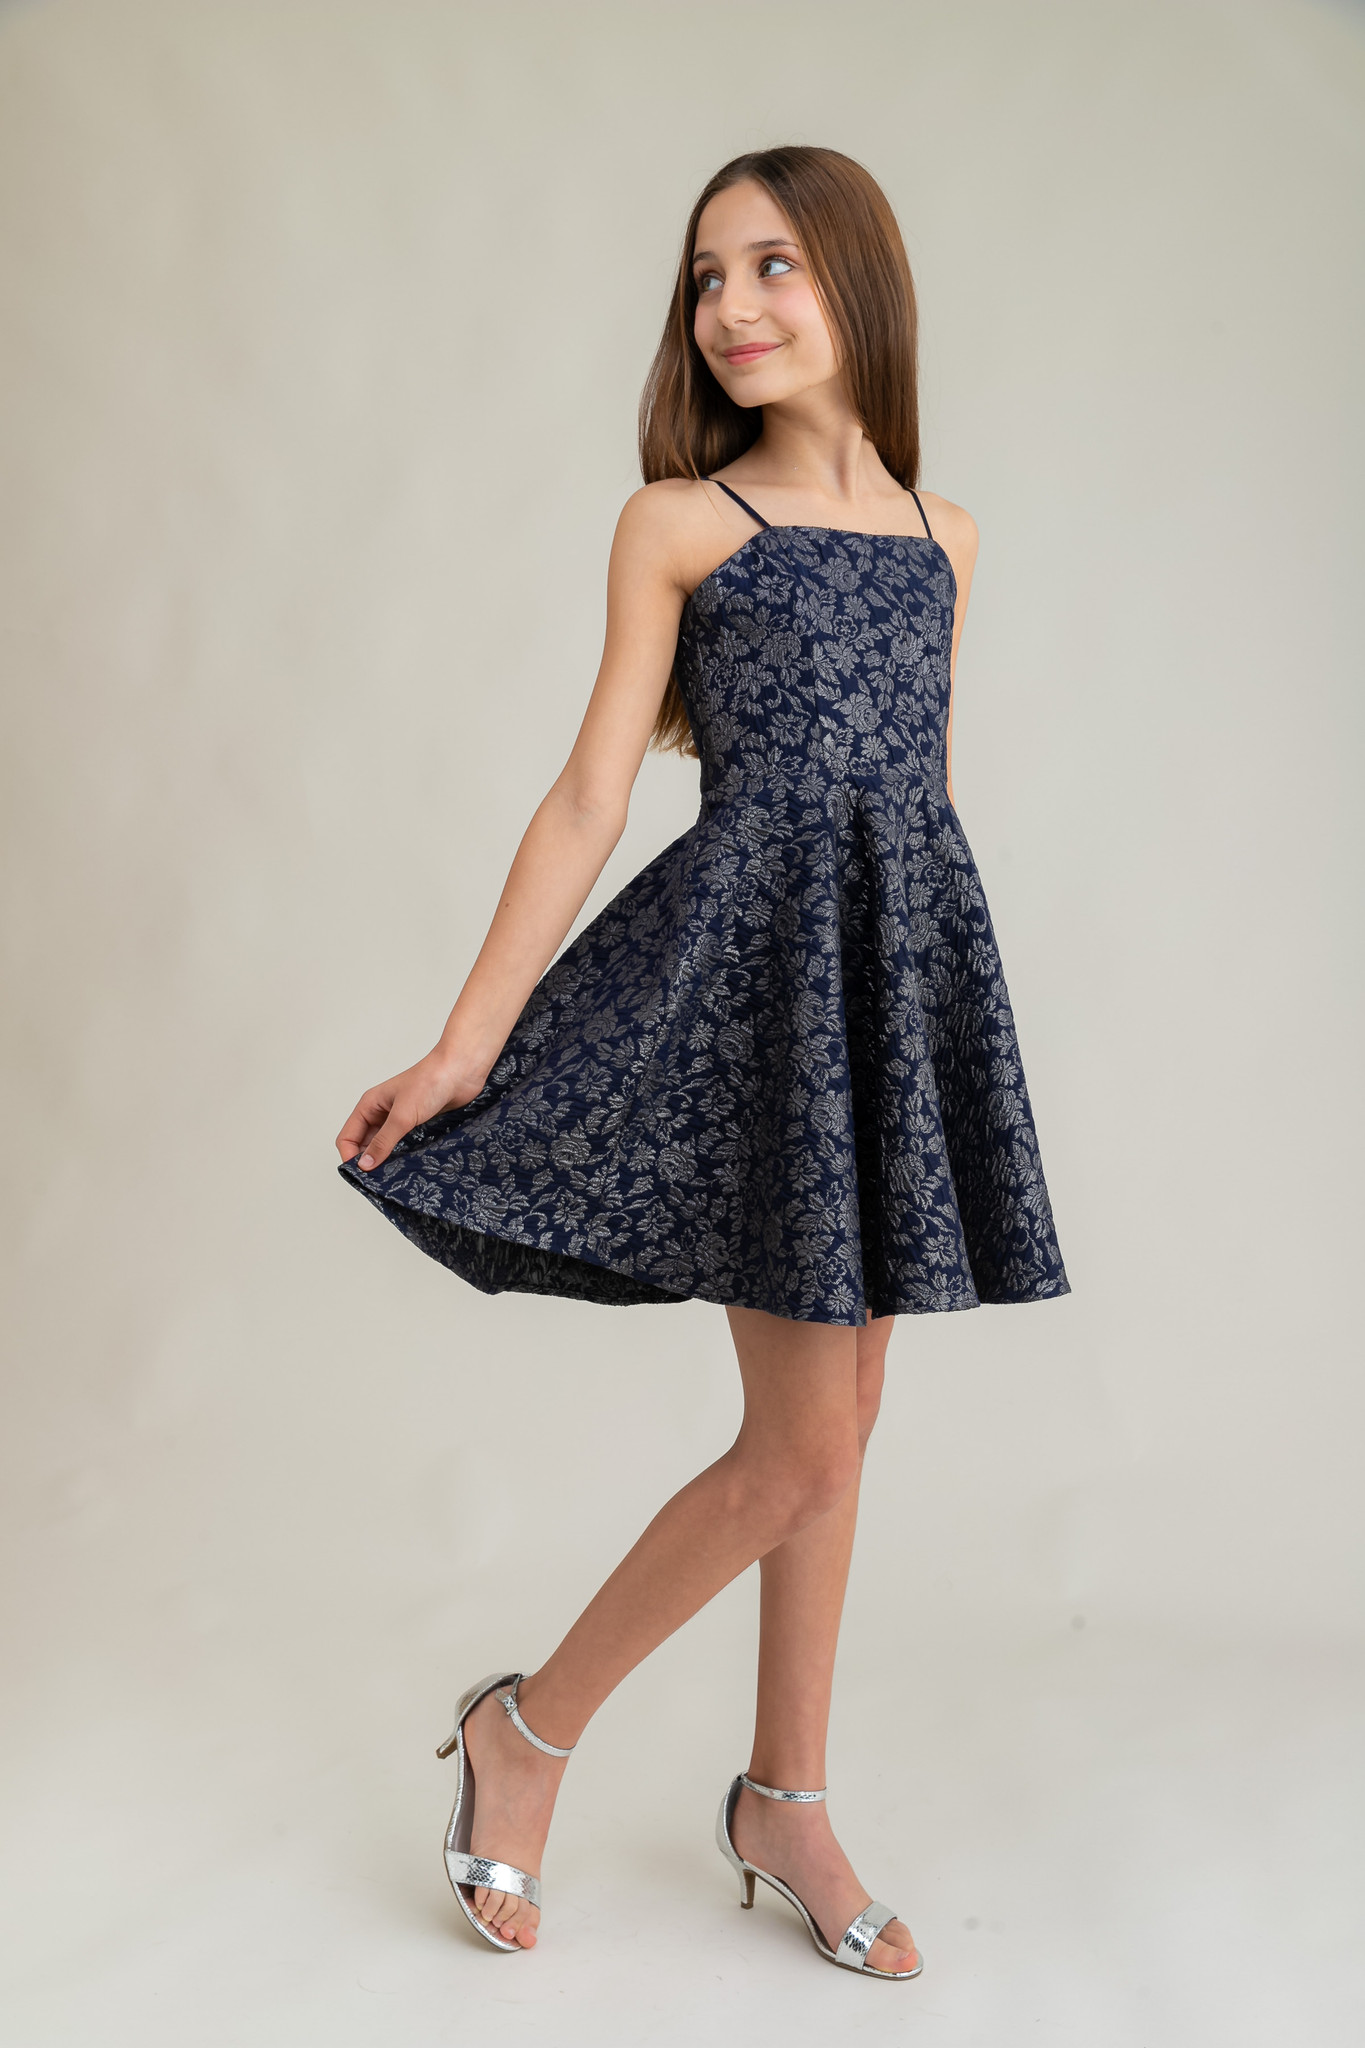 Tween Girls Navy and Silver Jacquard Party Dress in Longer Length.